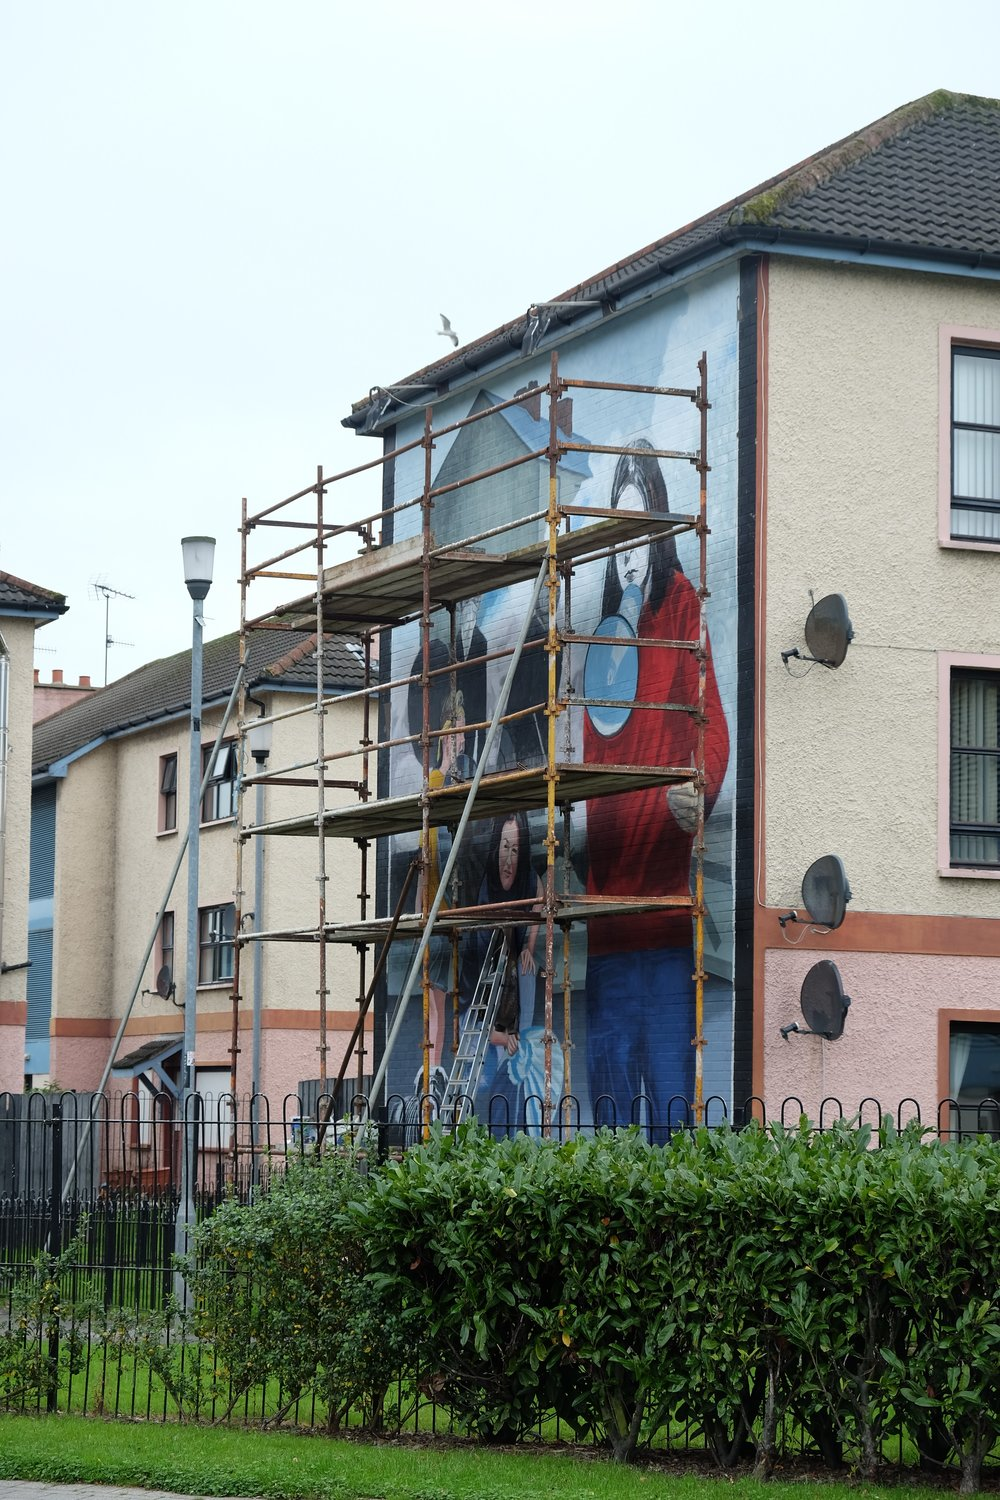 Under renovation when we were in Derry was the famous mural depicting Bernadette Devlin addressing the crowds on the streets of the Bogside. At age 21, she was the youngest MP ever elected to Parliament at the time, and she was convicted of incitement to riot in December 1969.